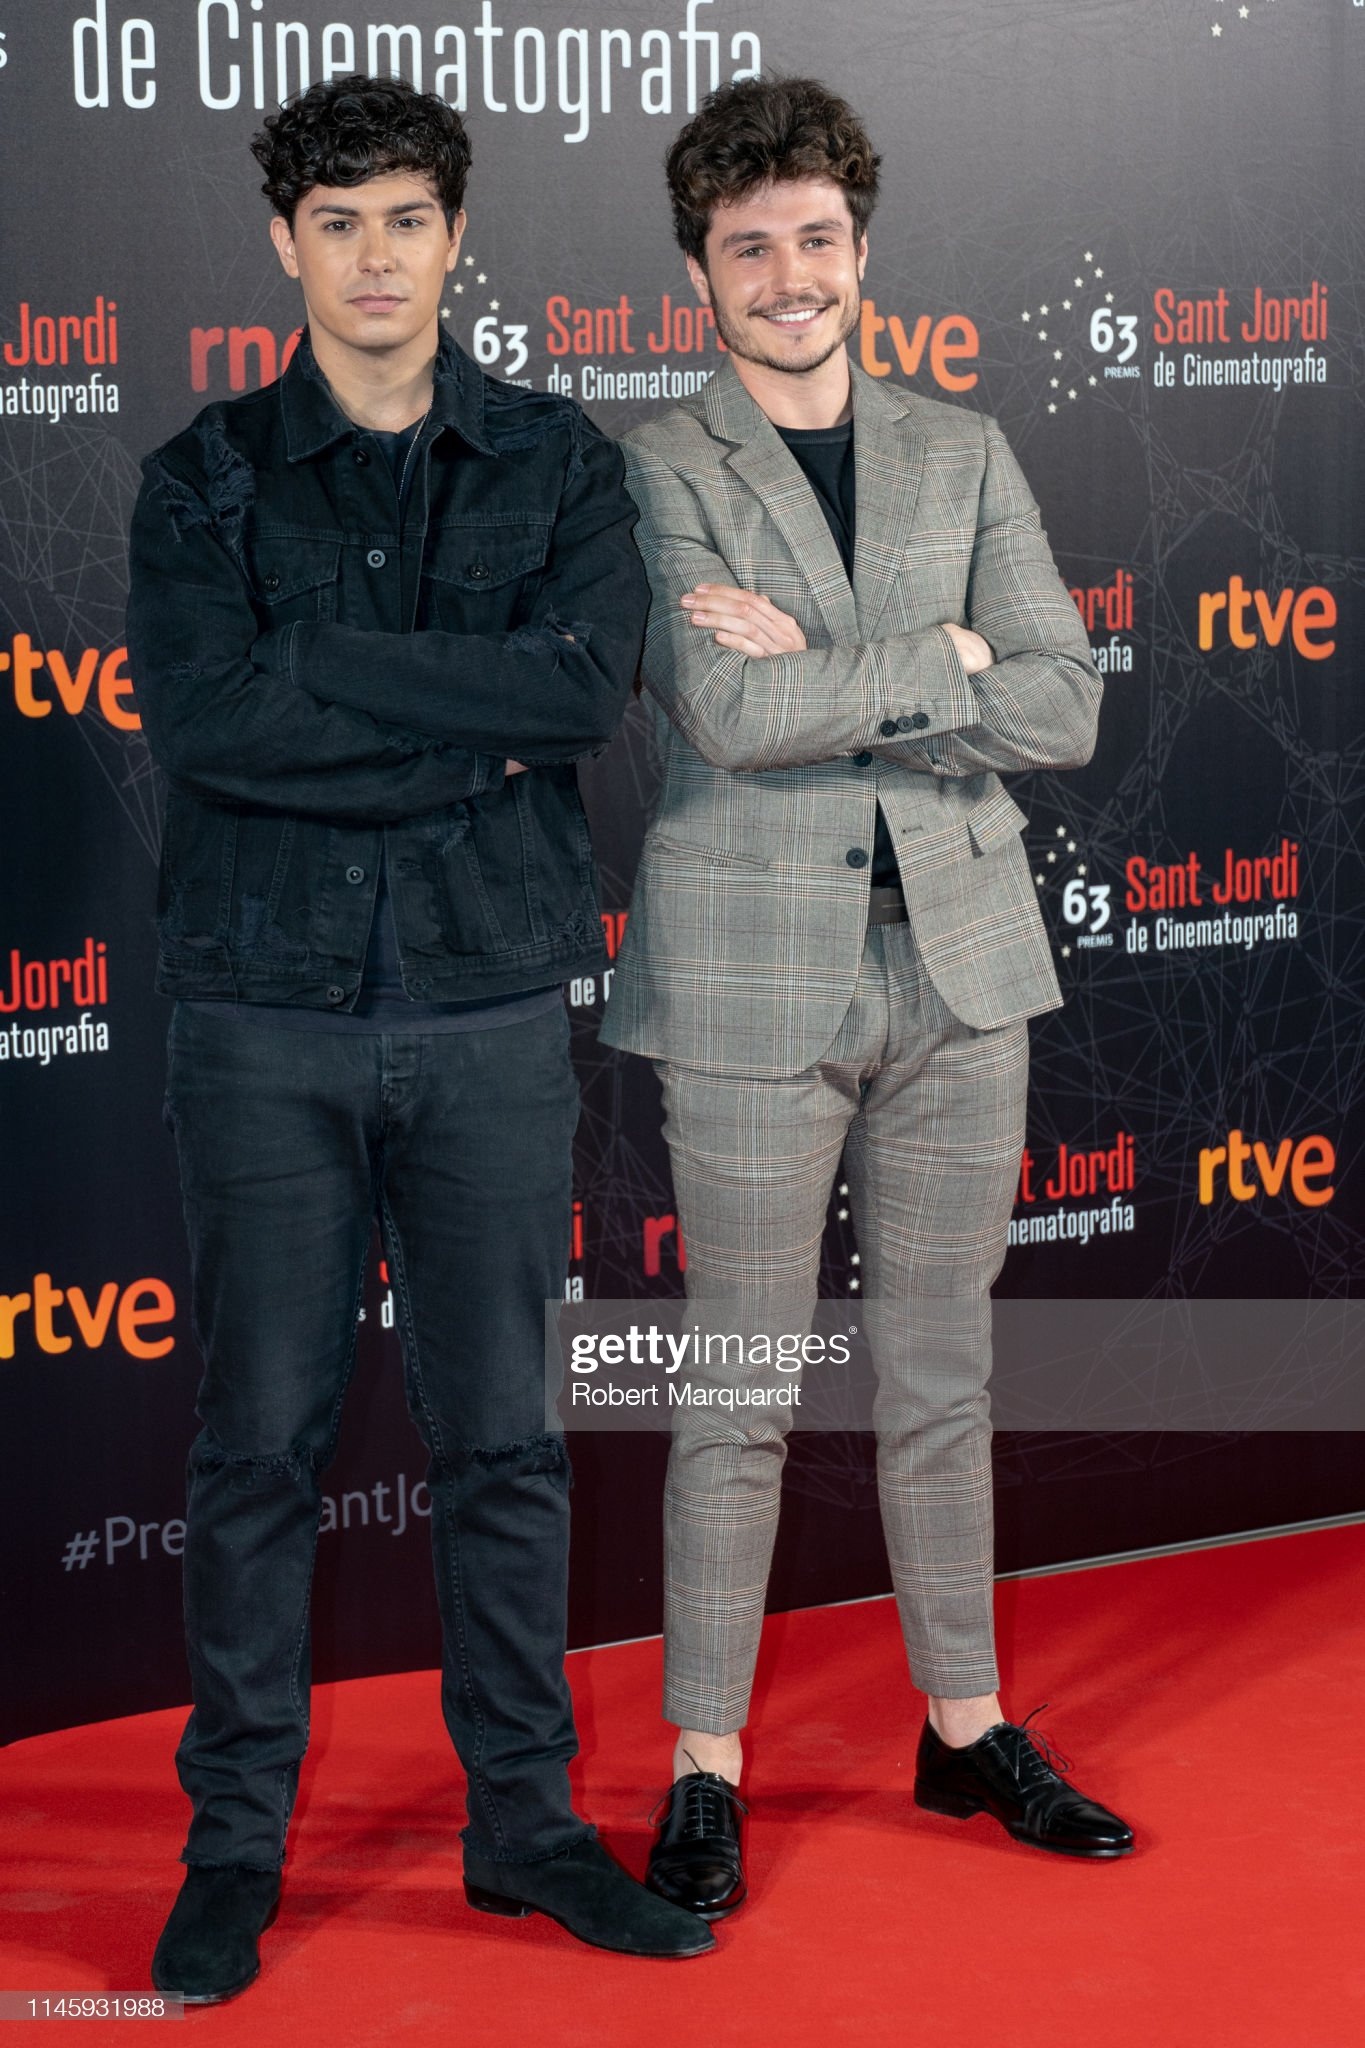 ¿Cuánto mide Miki Núñez? (OT 2018) - Altura - Página 2 Alfred-garcia-and-miki-pose-during-a-photocall-for-the-63rd-sant-picture-id1145931988?s=2048x2048